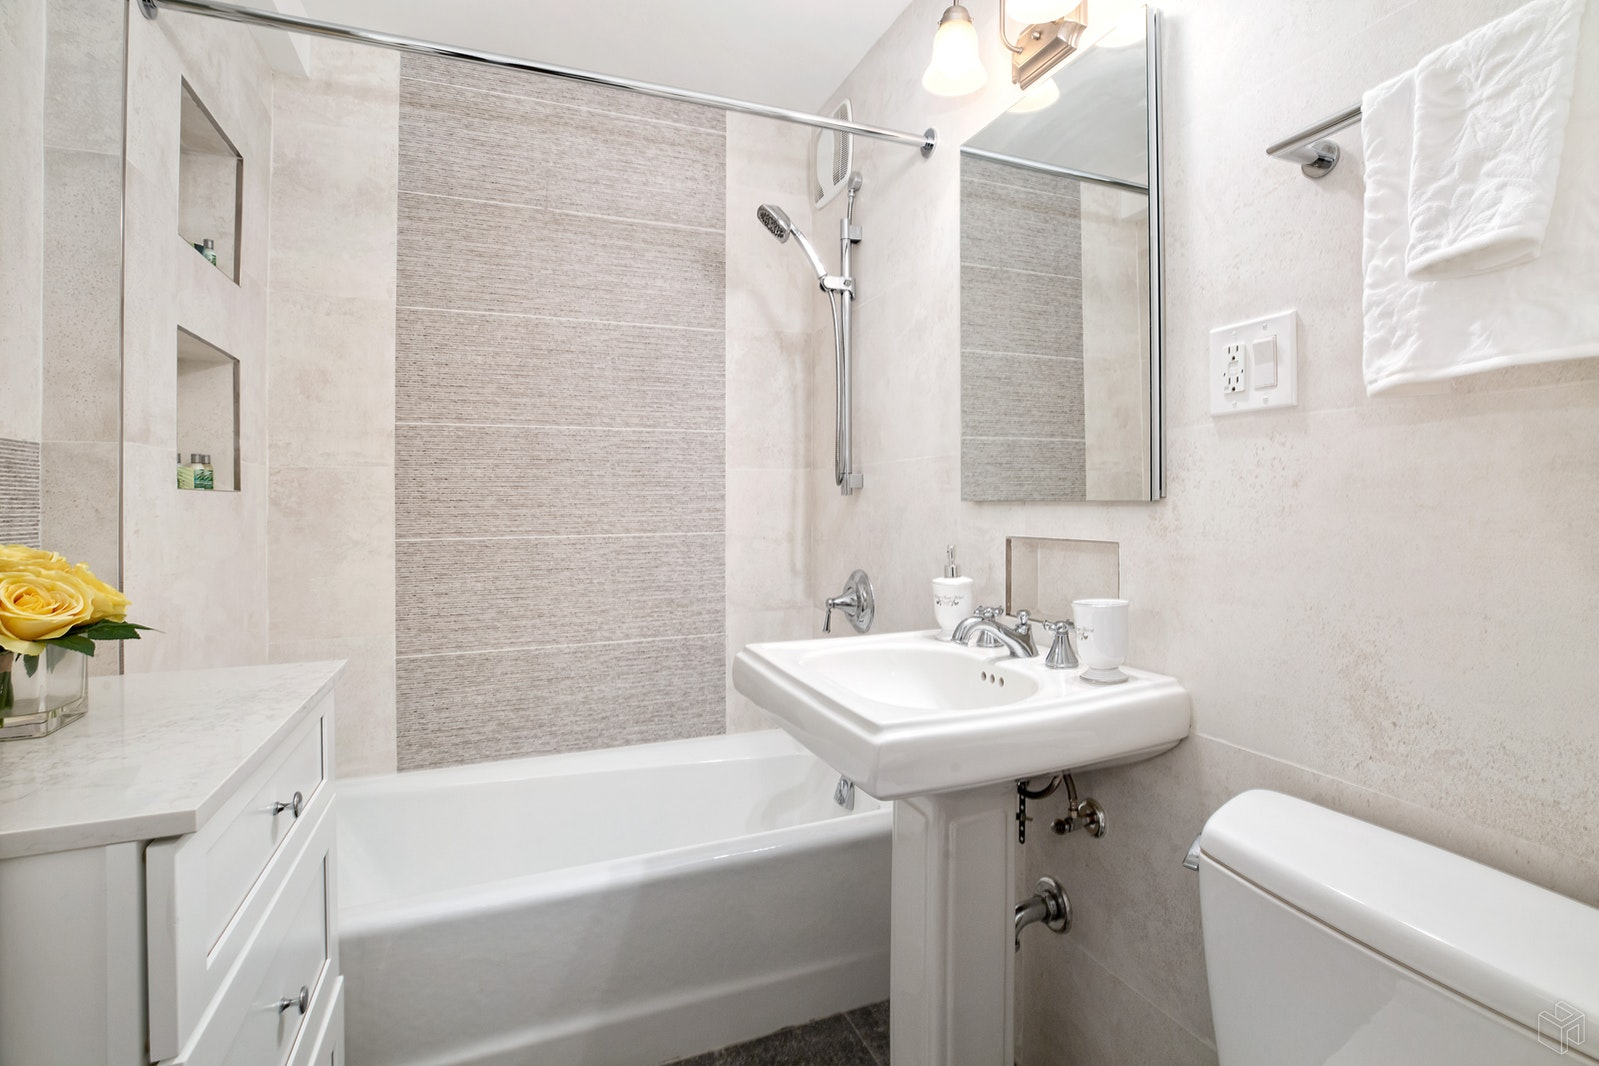 15 West 84th Street 1h, Upper West Side, NYC, 10024, $1,125,000, Property For Sale, Halstead Real Estate, Photo 6